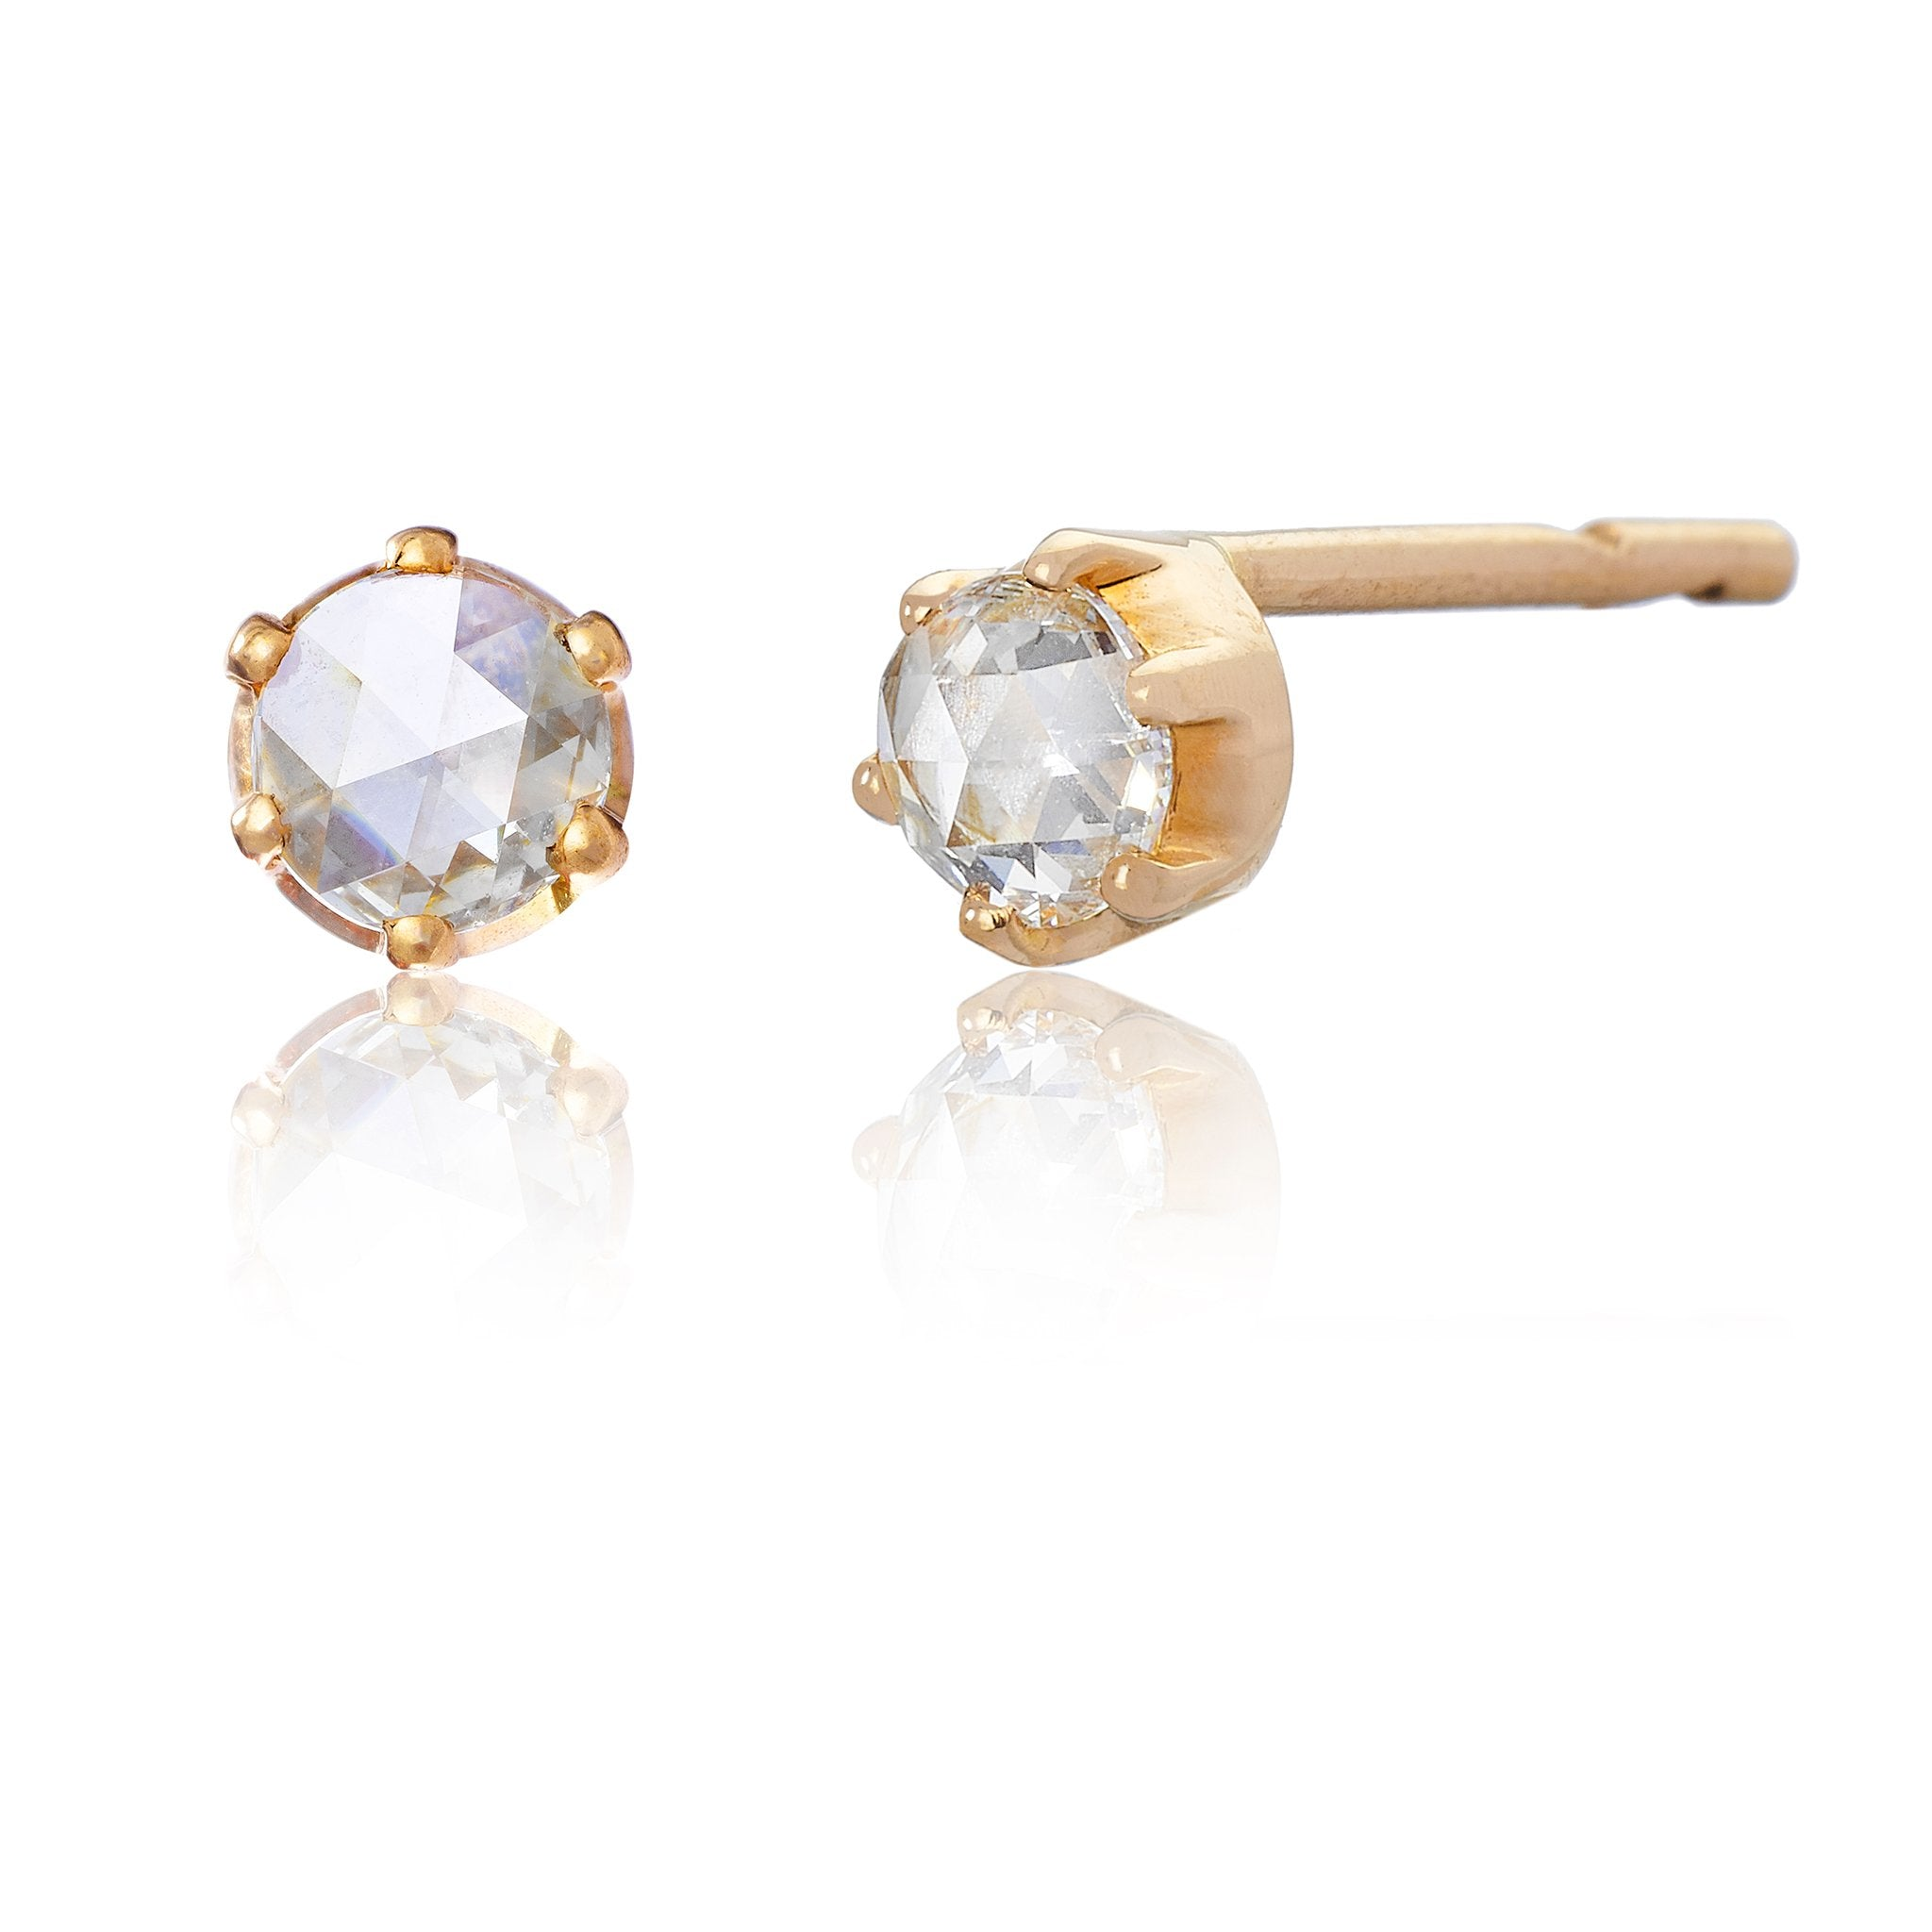 The Salena Earrings